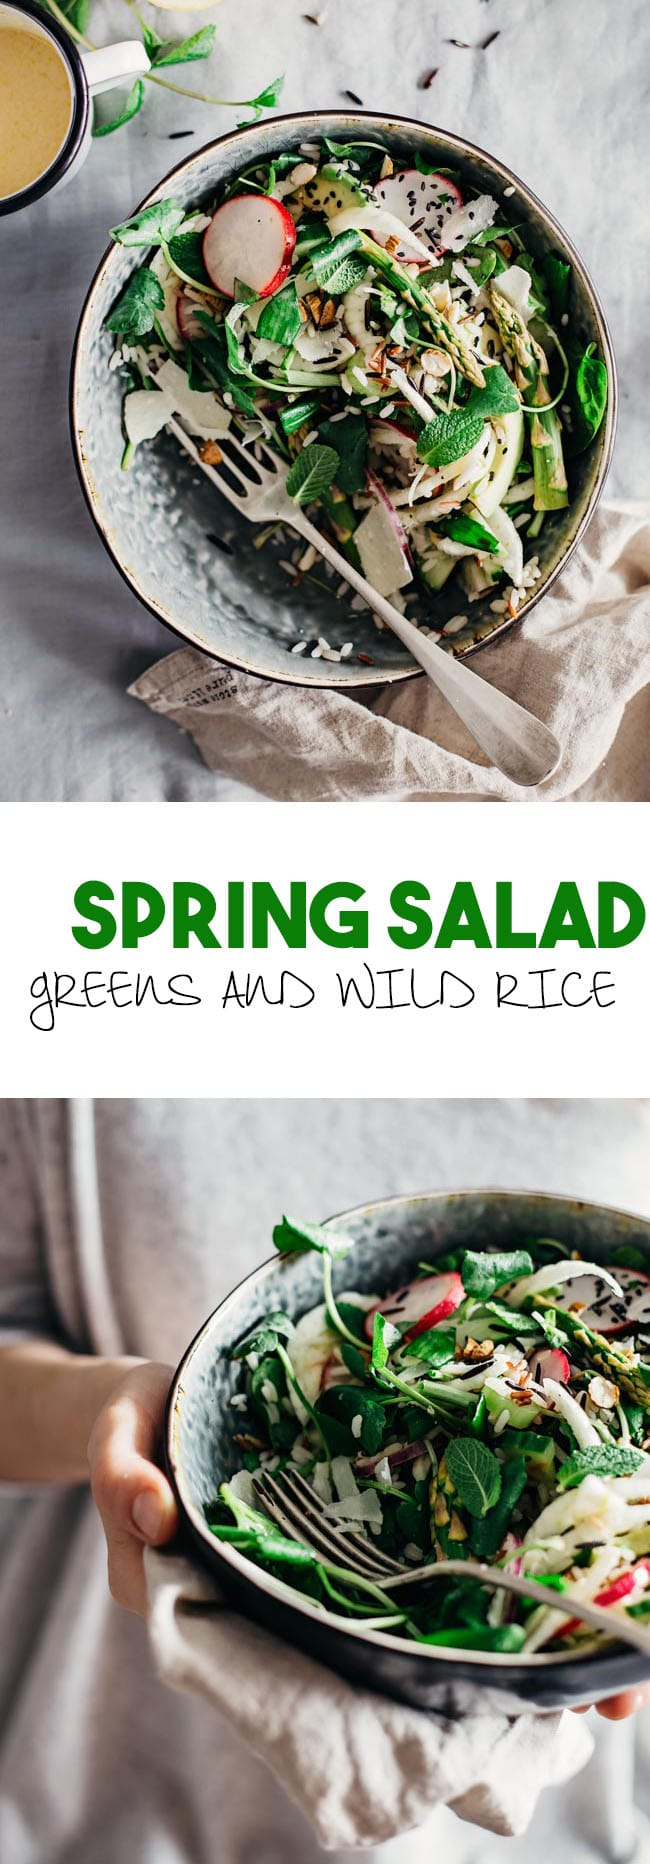 Spring salad with fresh greens, herbs and wild rice, for a detox lunch | TheAwesomeGreen.com